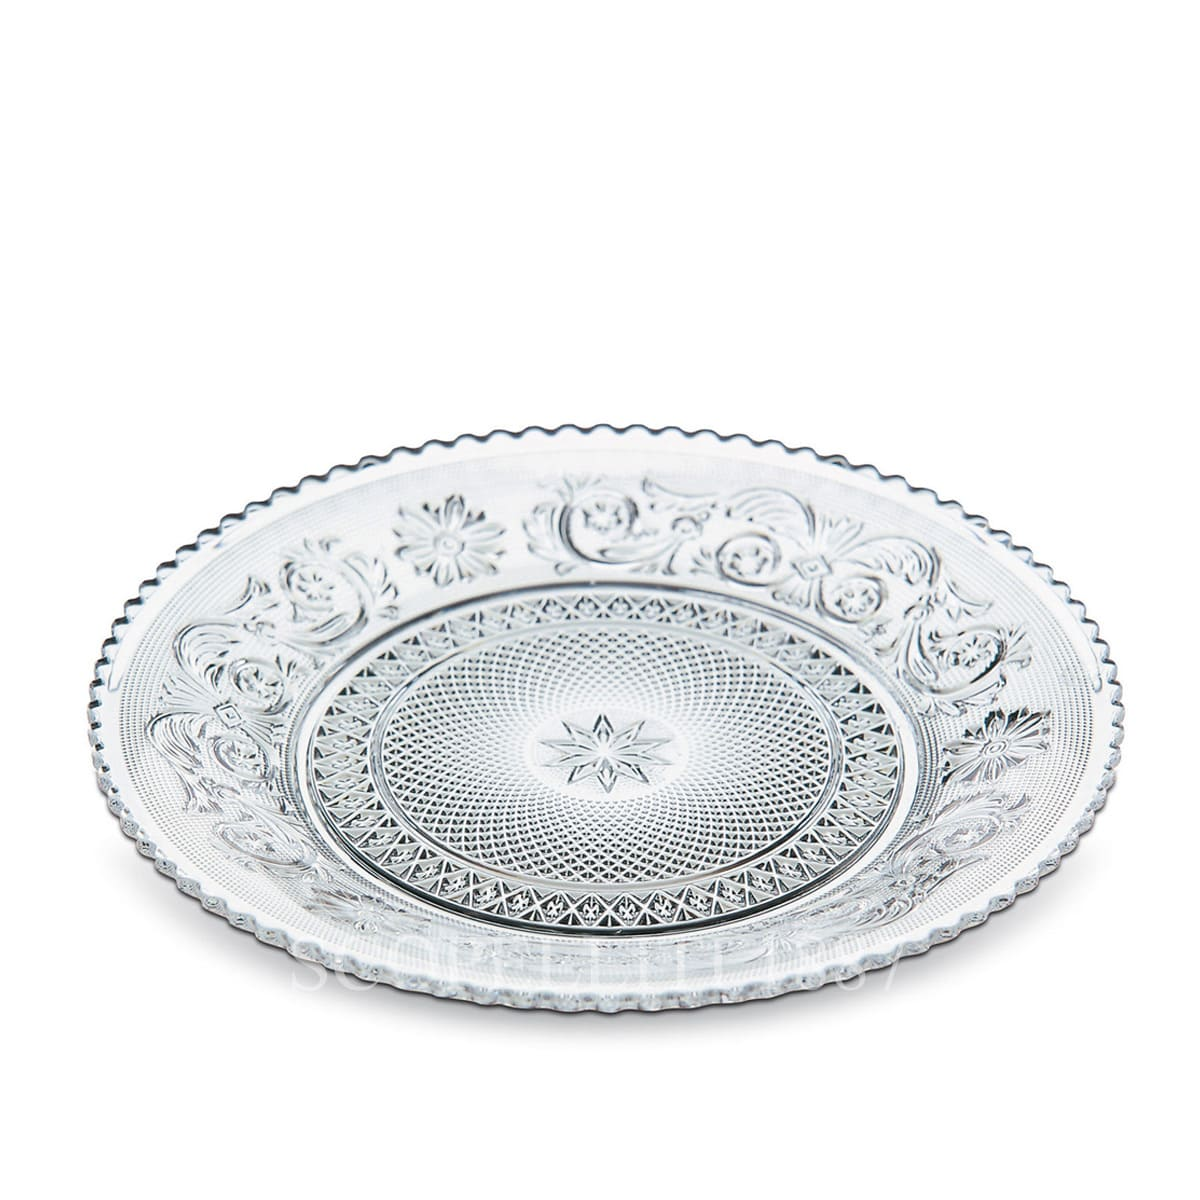 baccarat crystal french design arabesque dessert plate